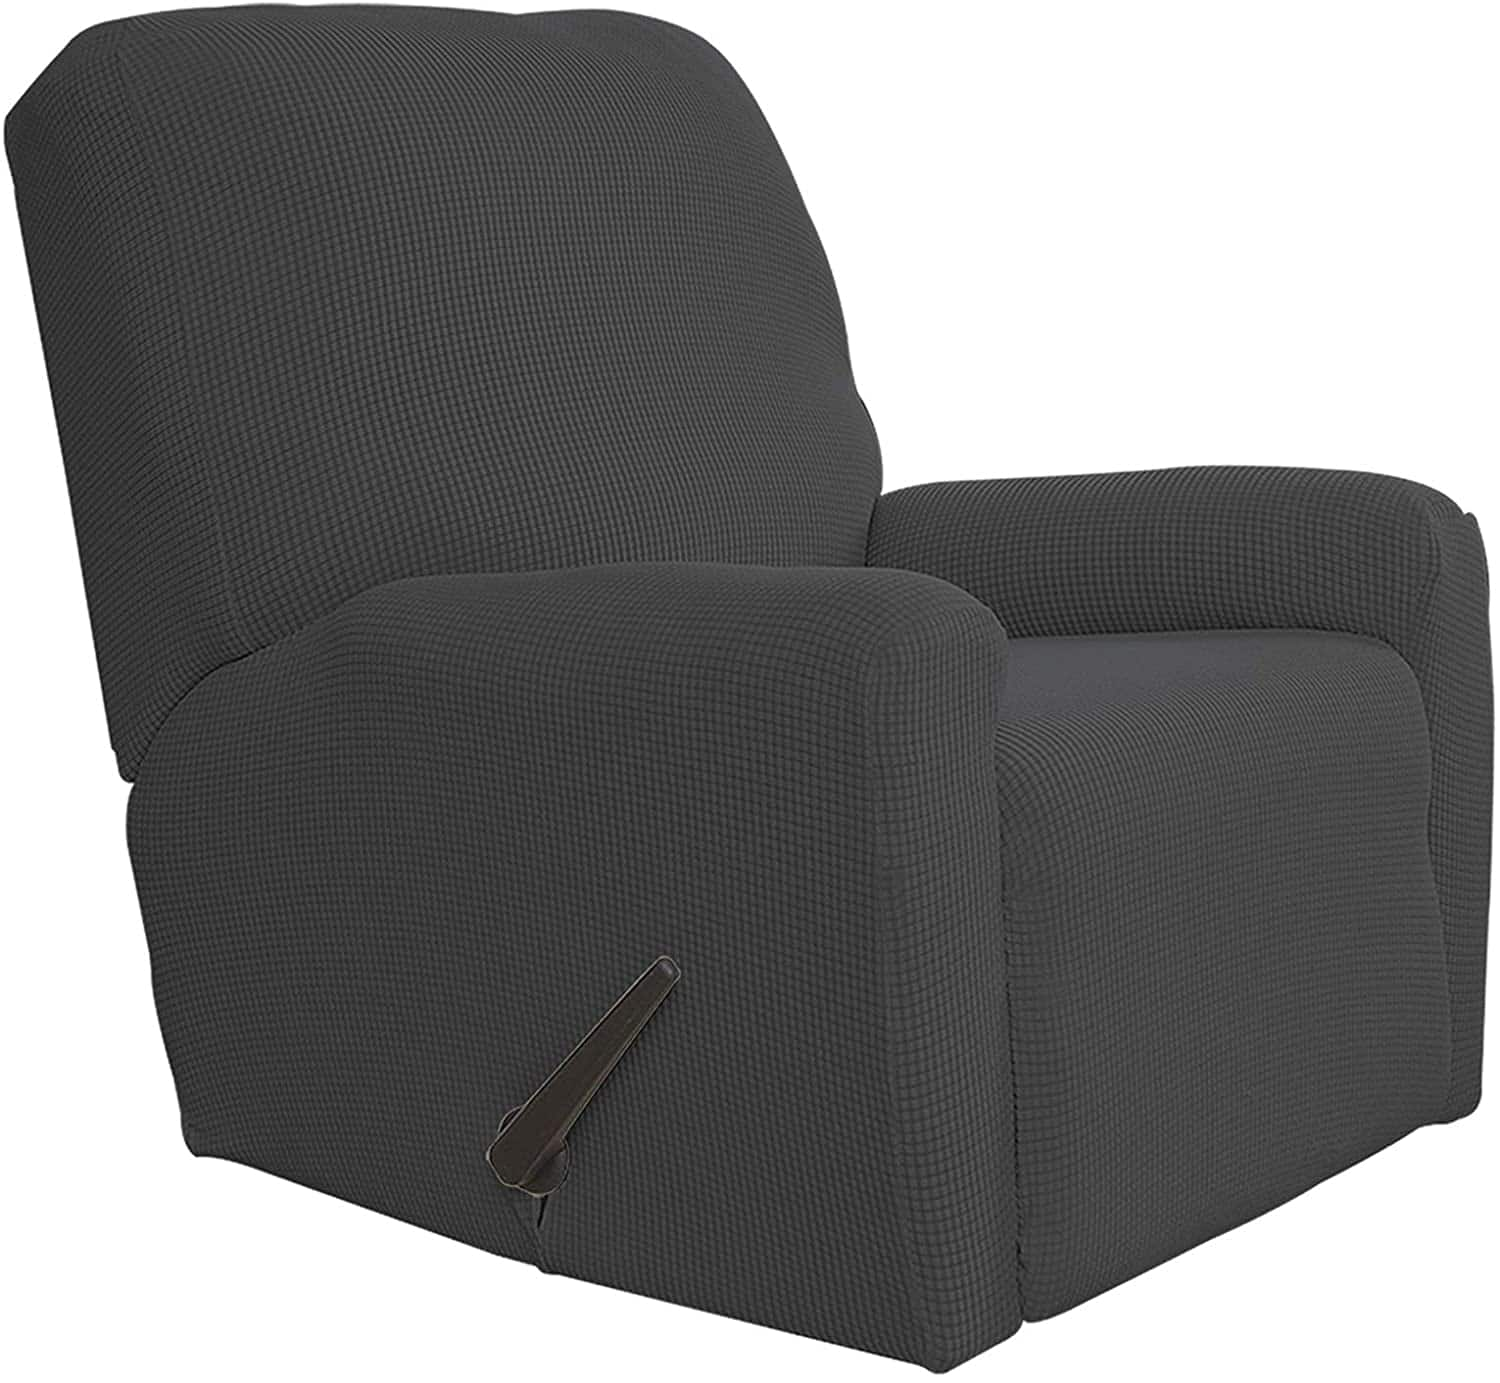 Stretch Recliner Furniture Protector $23.79